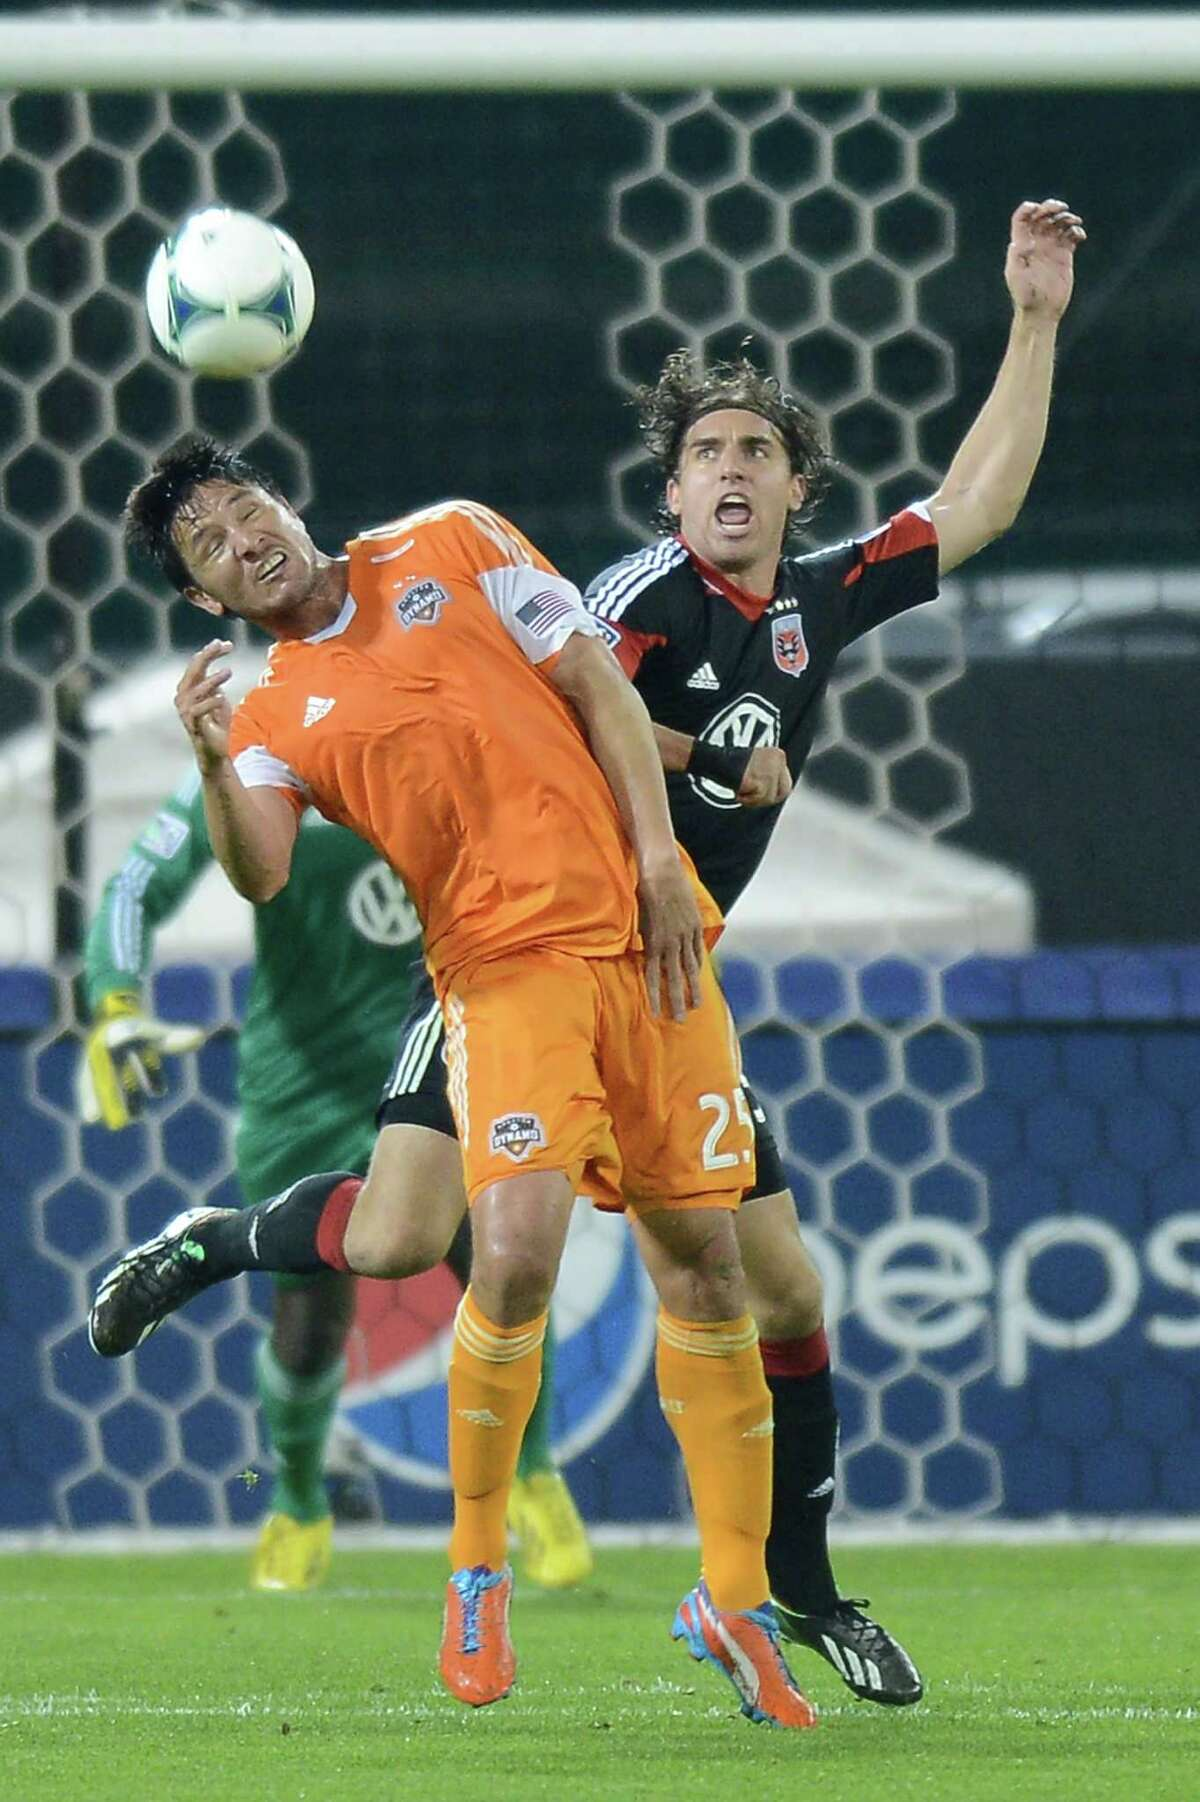 Houston Dynamo forward Brian Ching (25) and D.C. United defender Dejan Jakovic (5) battle for a head ball in the second half at RFK Stadium in Washington, D.C., Wednesday, May 8, 2013. Dynamo blanked United, 4-0. (Chuck Myers/MCT)